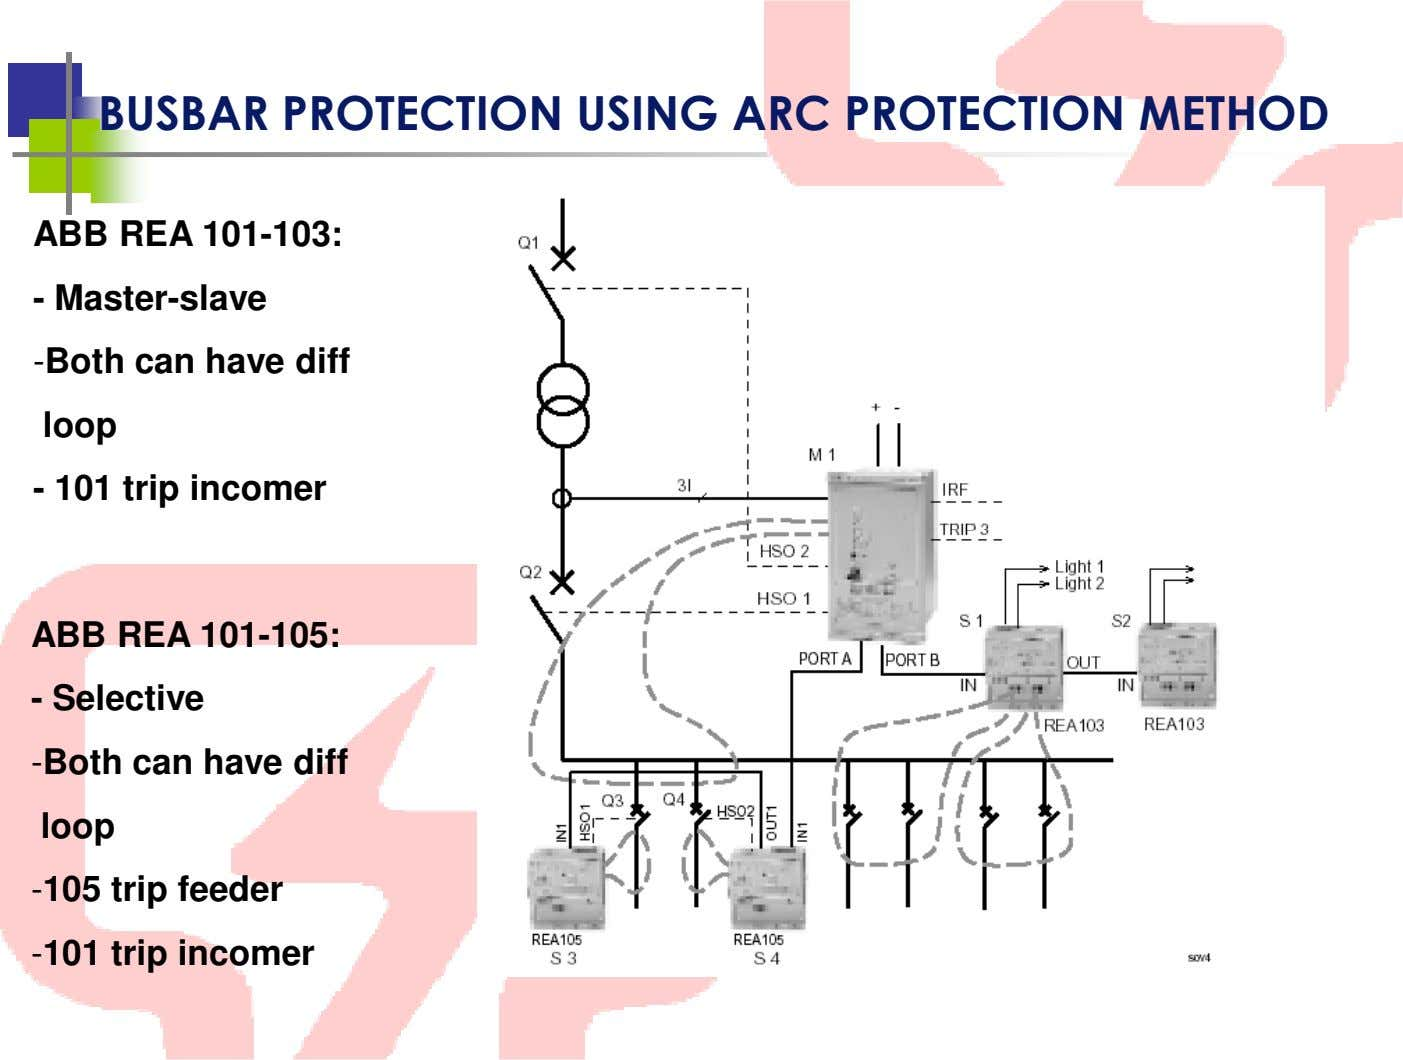 BUSBAR PROTECTION USING ARC PROTECTION METHOD ABB REA 101-103: - Master-slave -Both can have diff